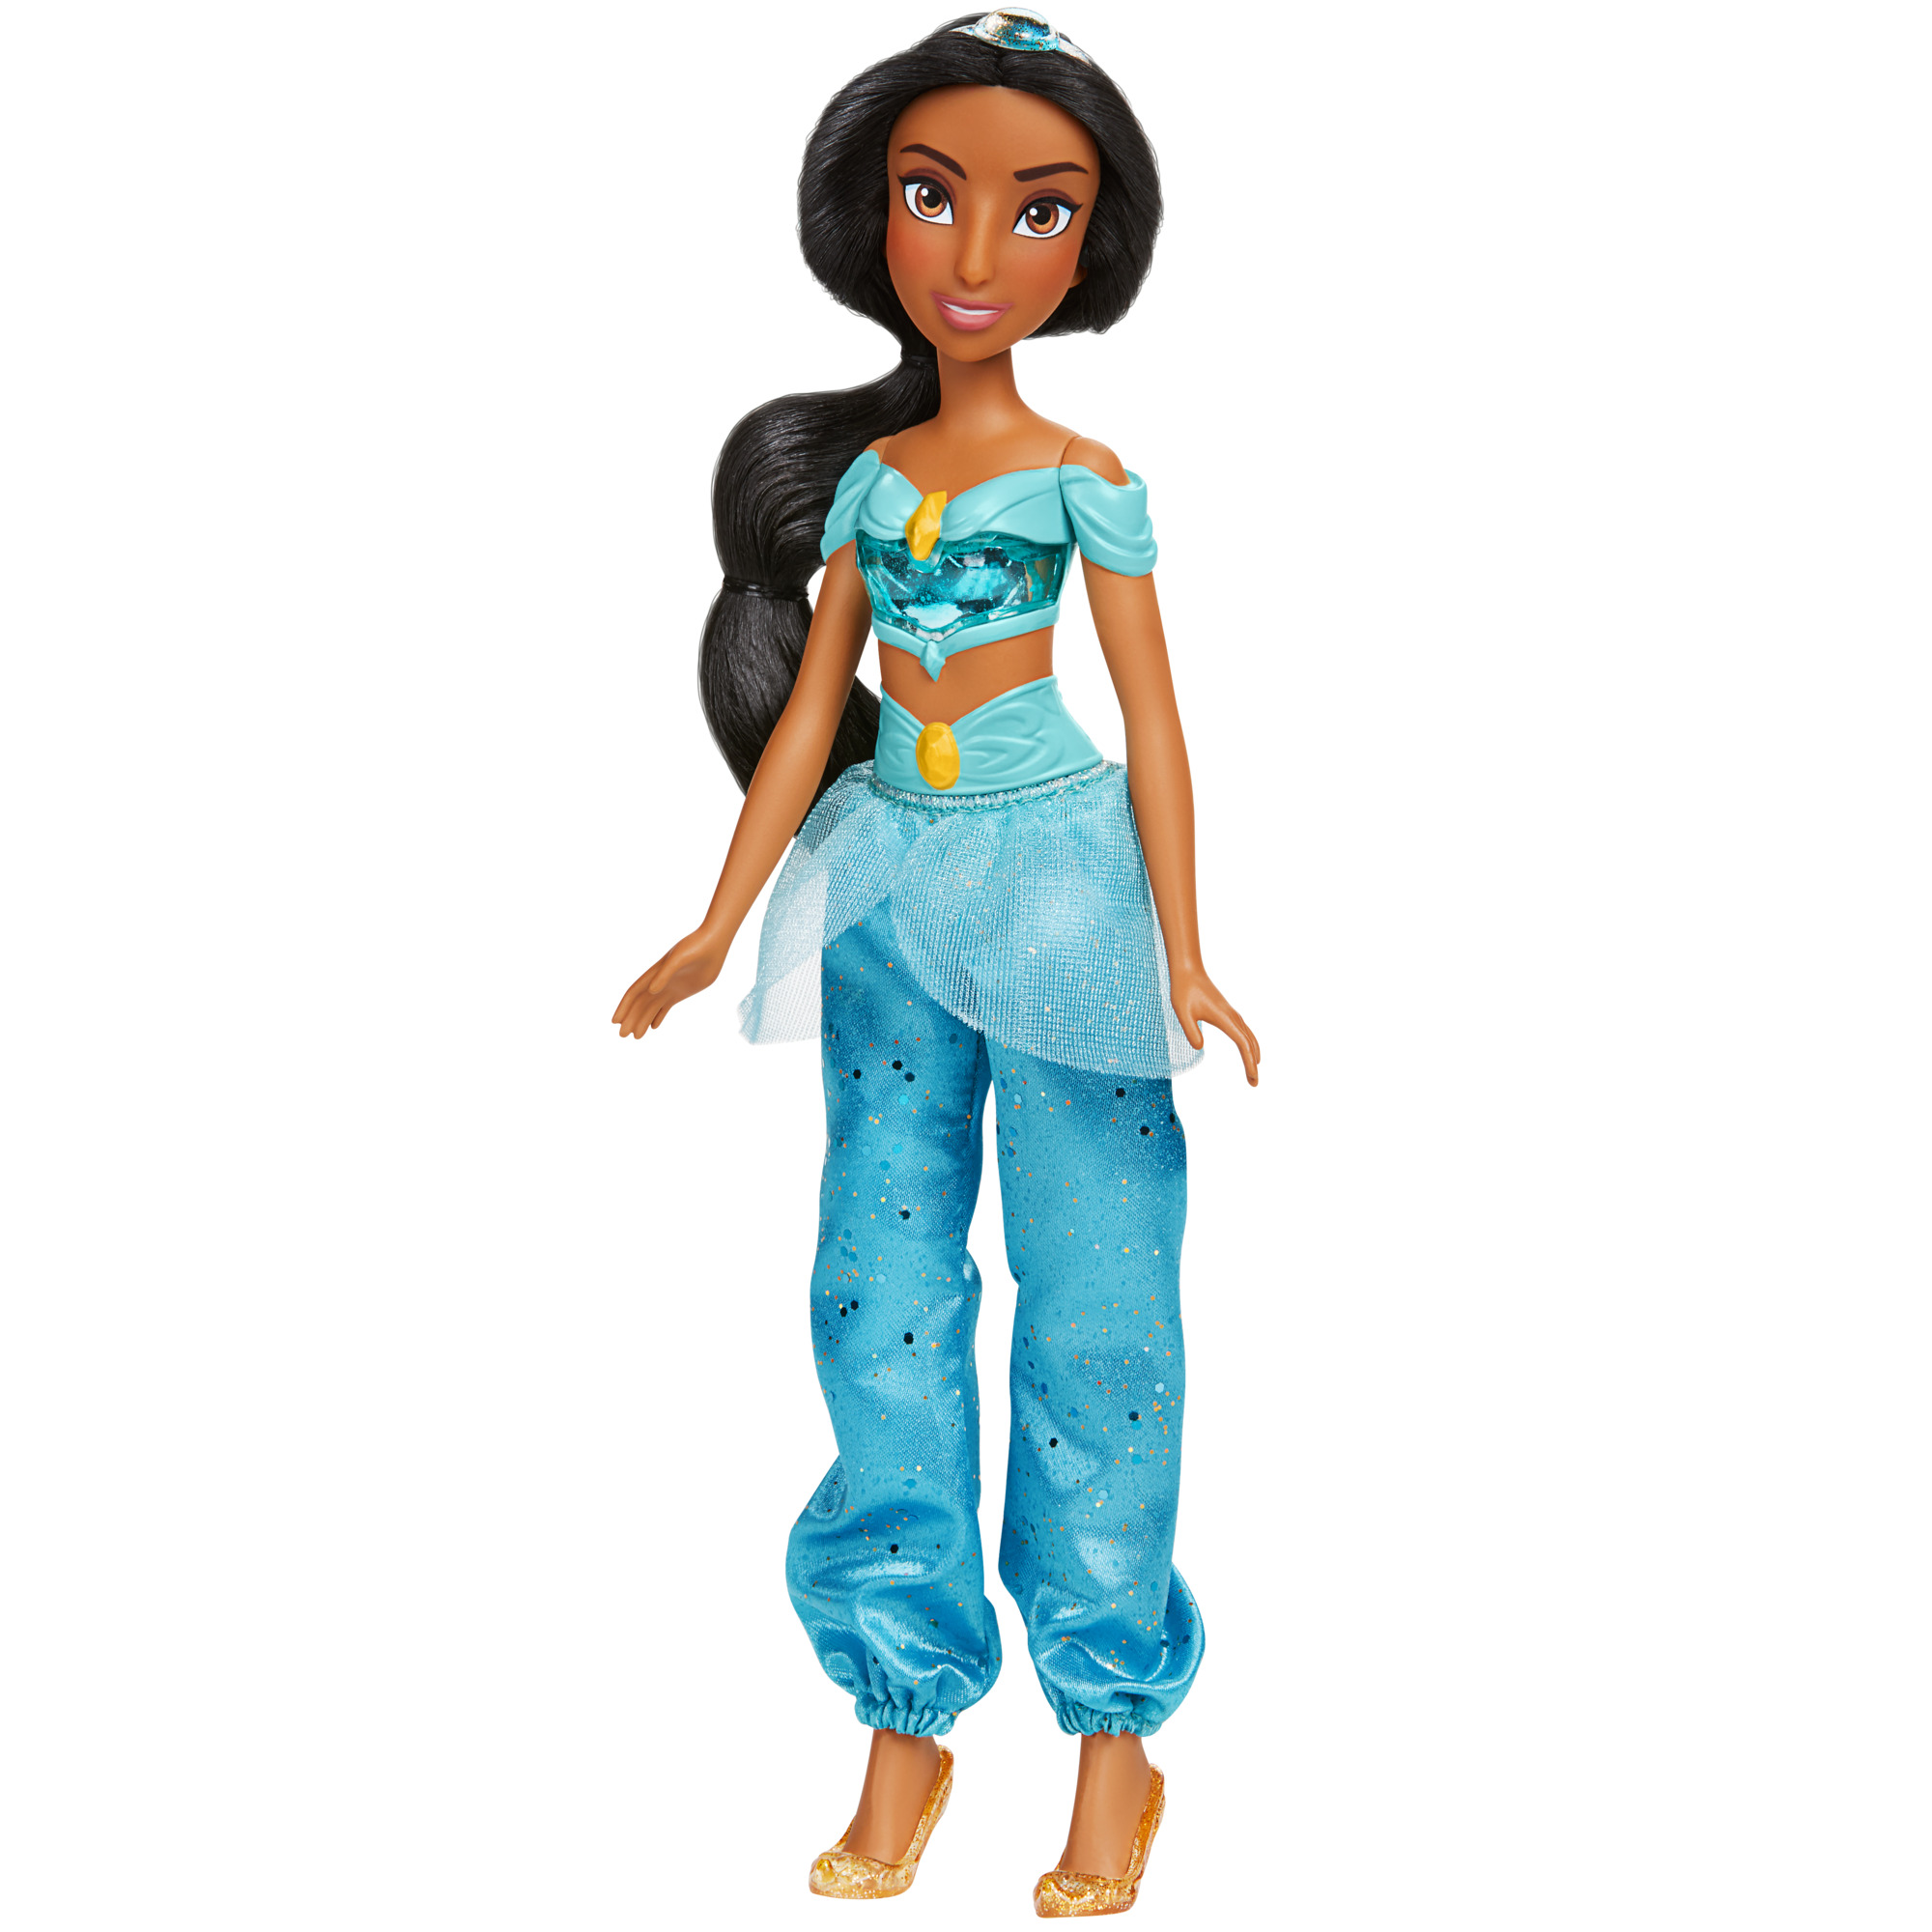 Disney Princess My Friend Moana Doll 14 Tall Includes Removable Outfit and Headband